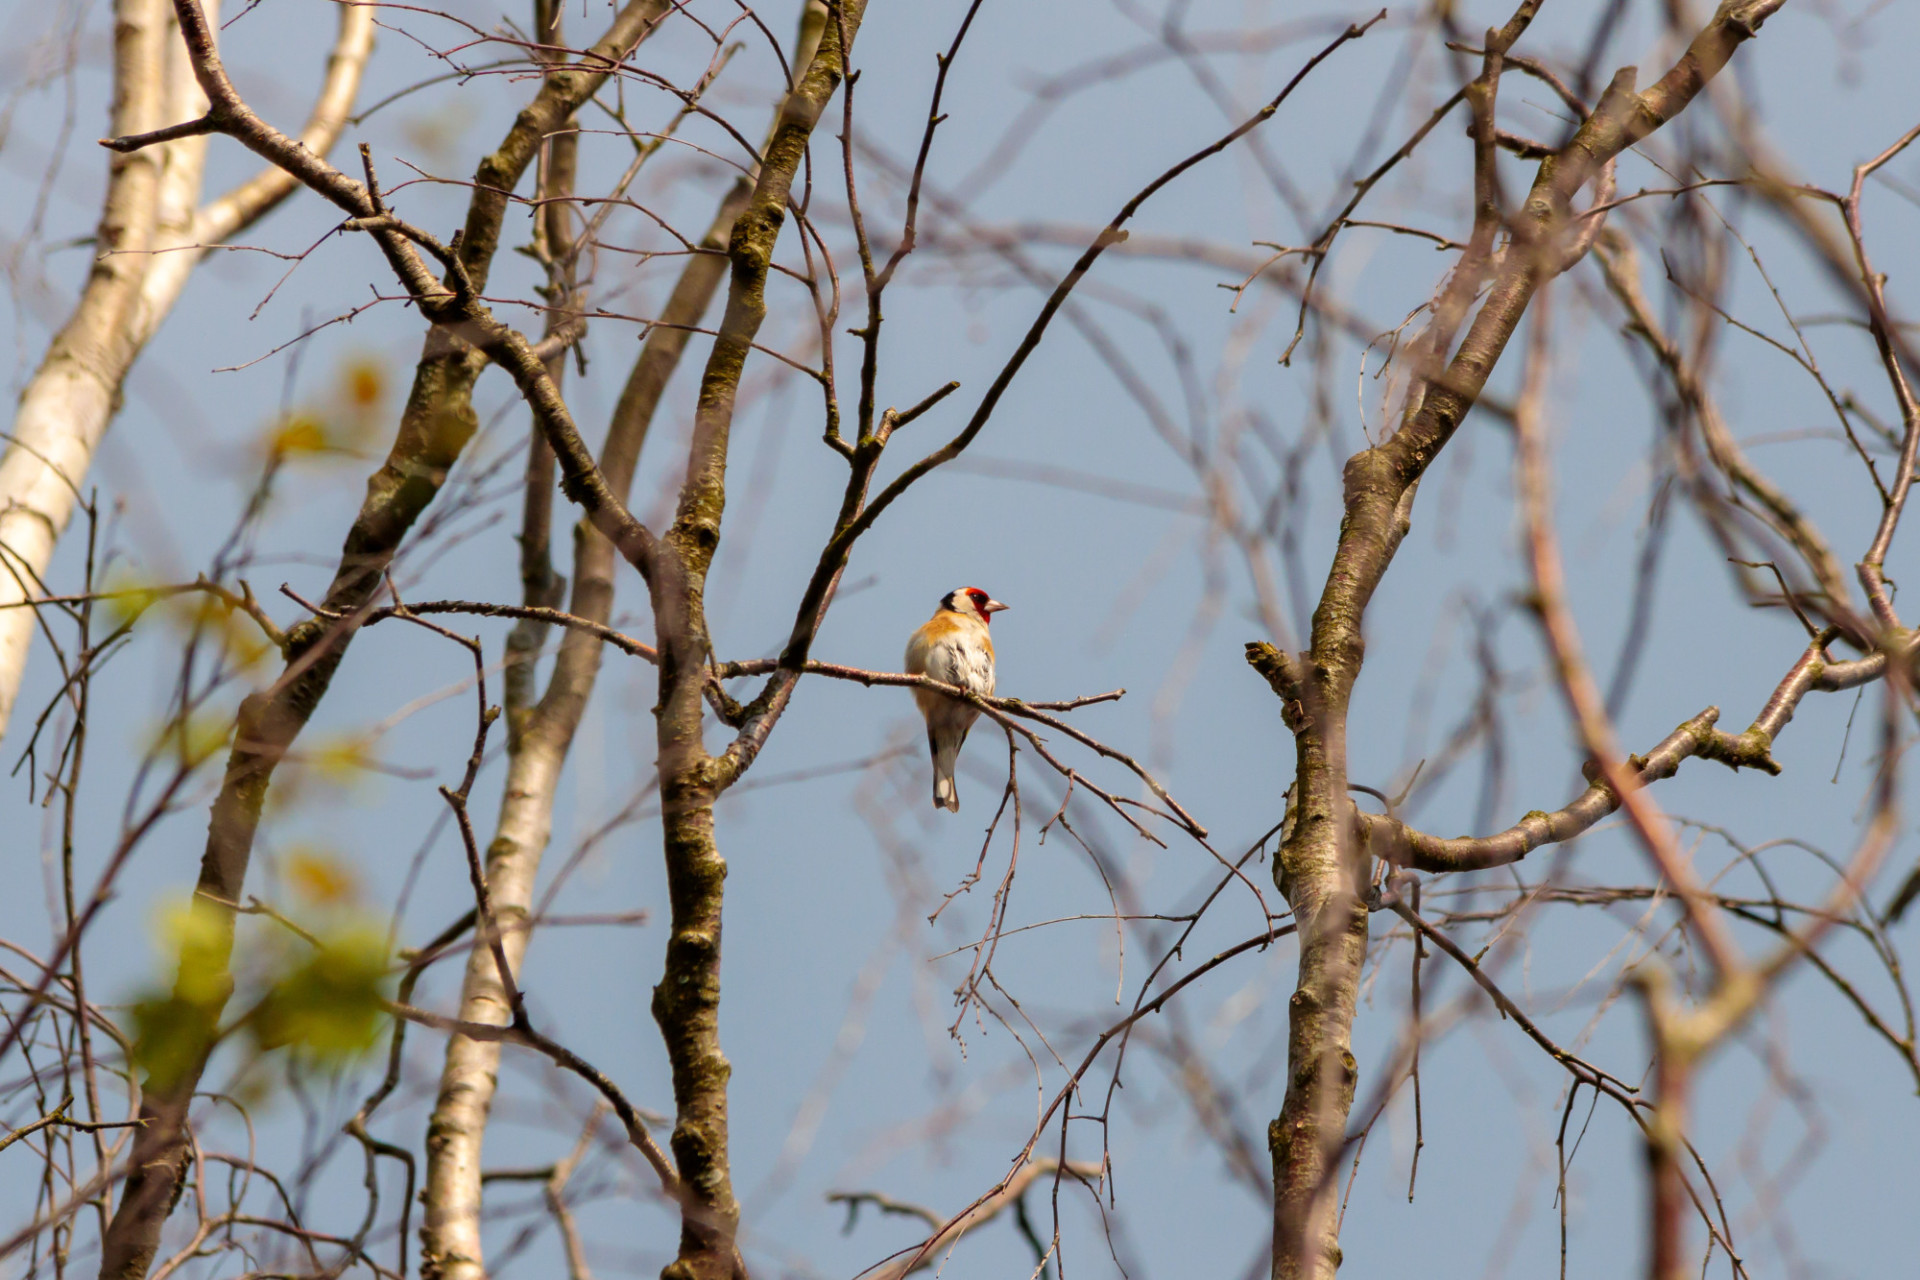 Goldfinch on a tree